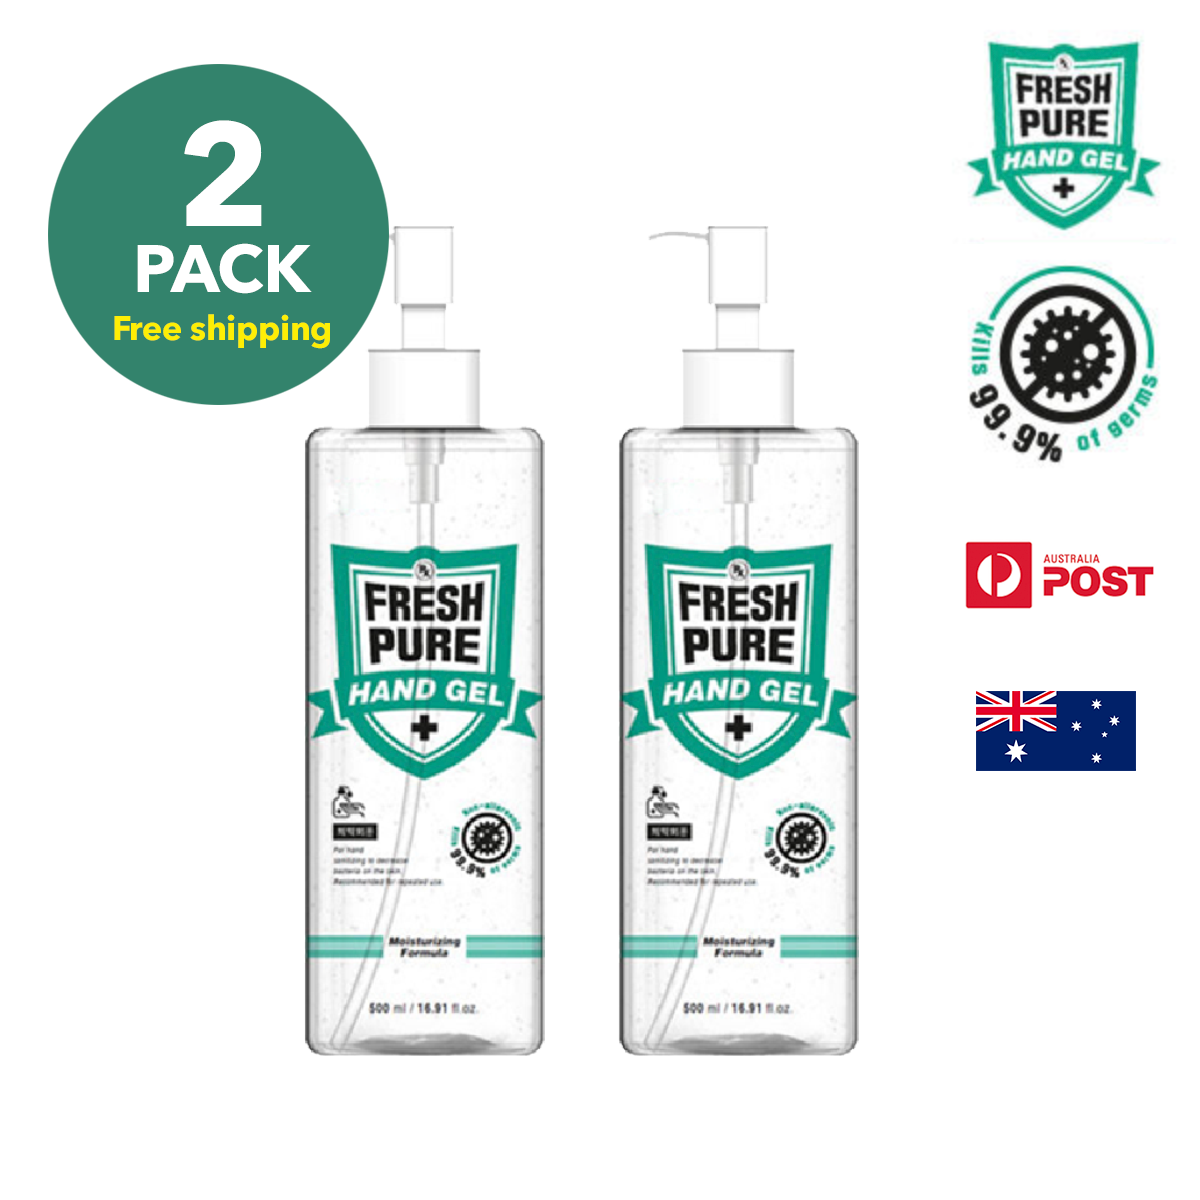 RX FRESH PURE HAND GEL 500ml x 2 Pack (Free shipping)